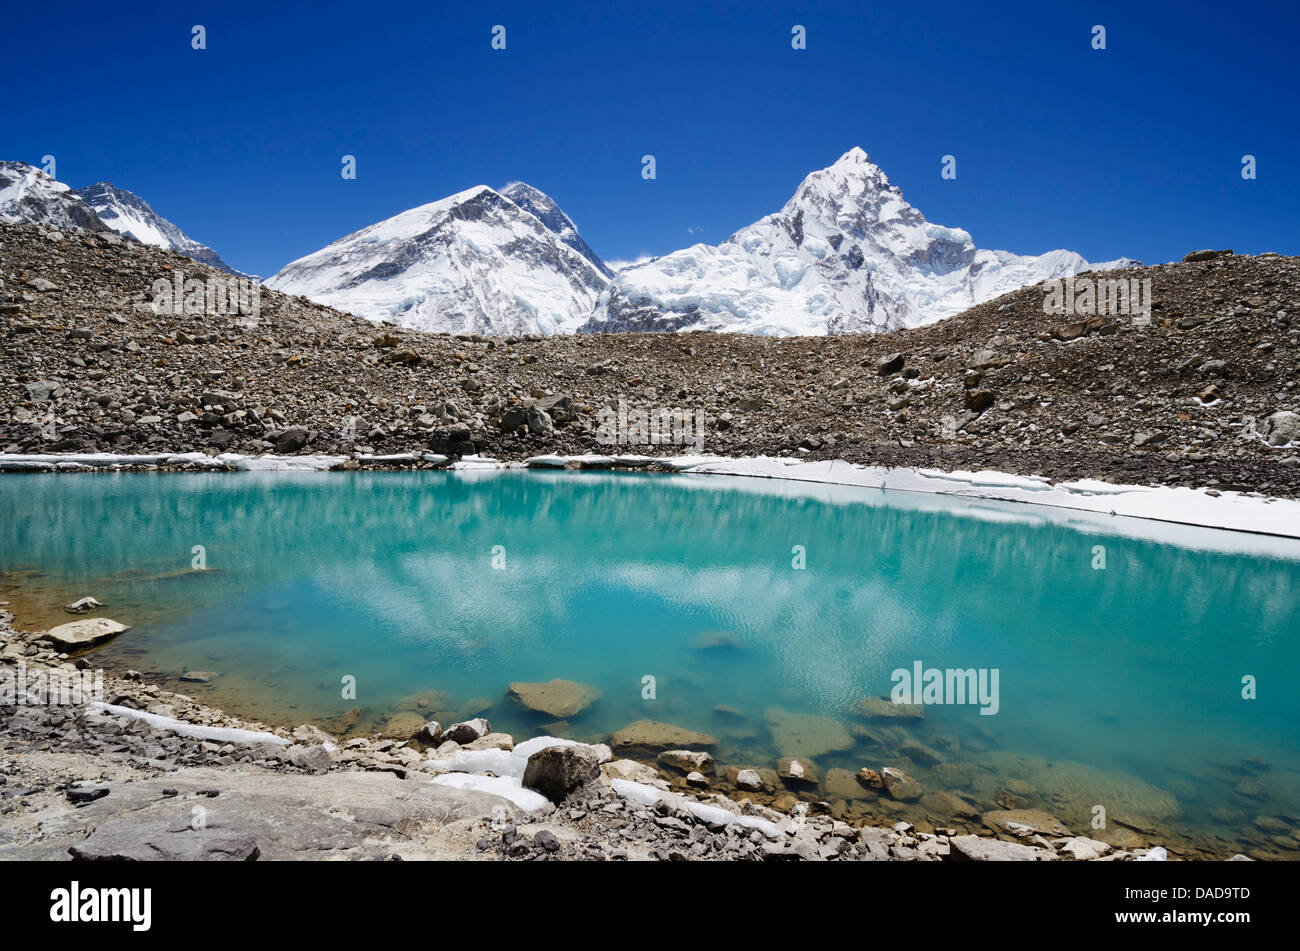 Mount Everest, 8850m, and glacial lake, Solu Khumbu Everest Region, Sagarmatha National Park, UNESCO Site, Nepal - Stock Image